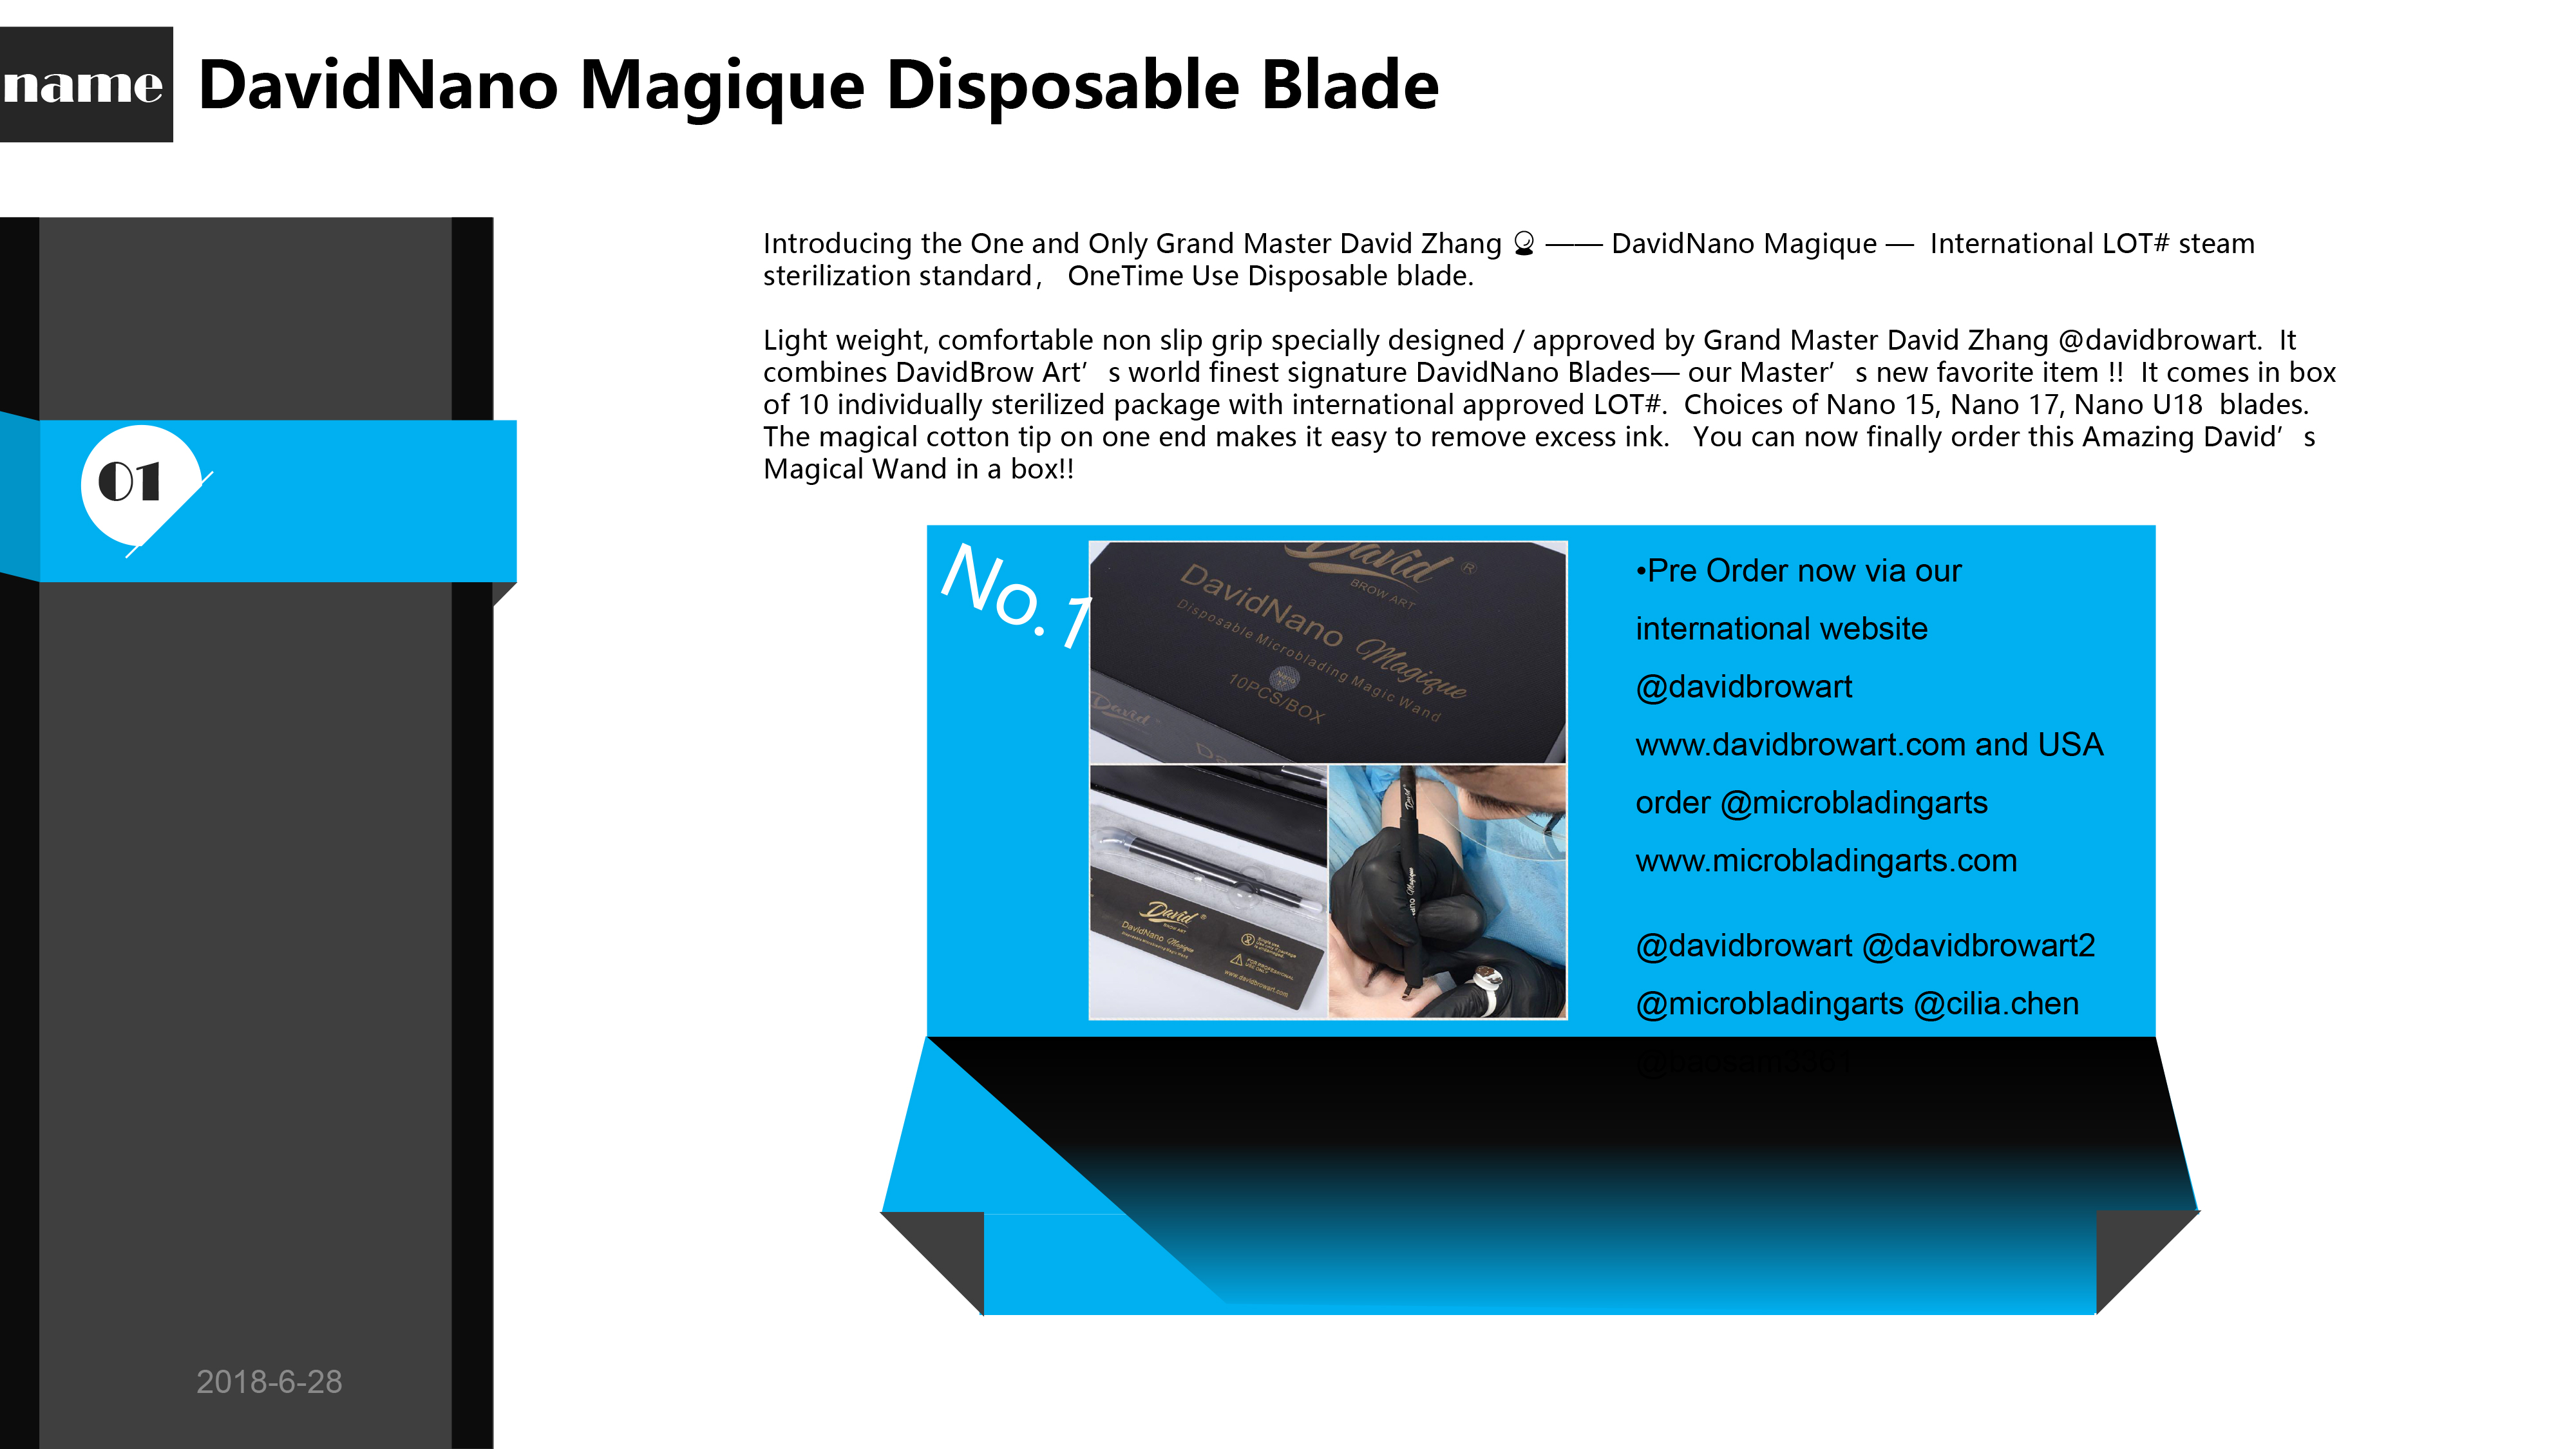 Latest Products:DavidNano Magique Disposable Blade